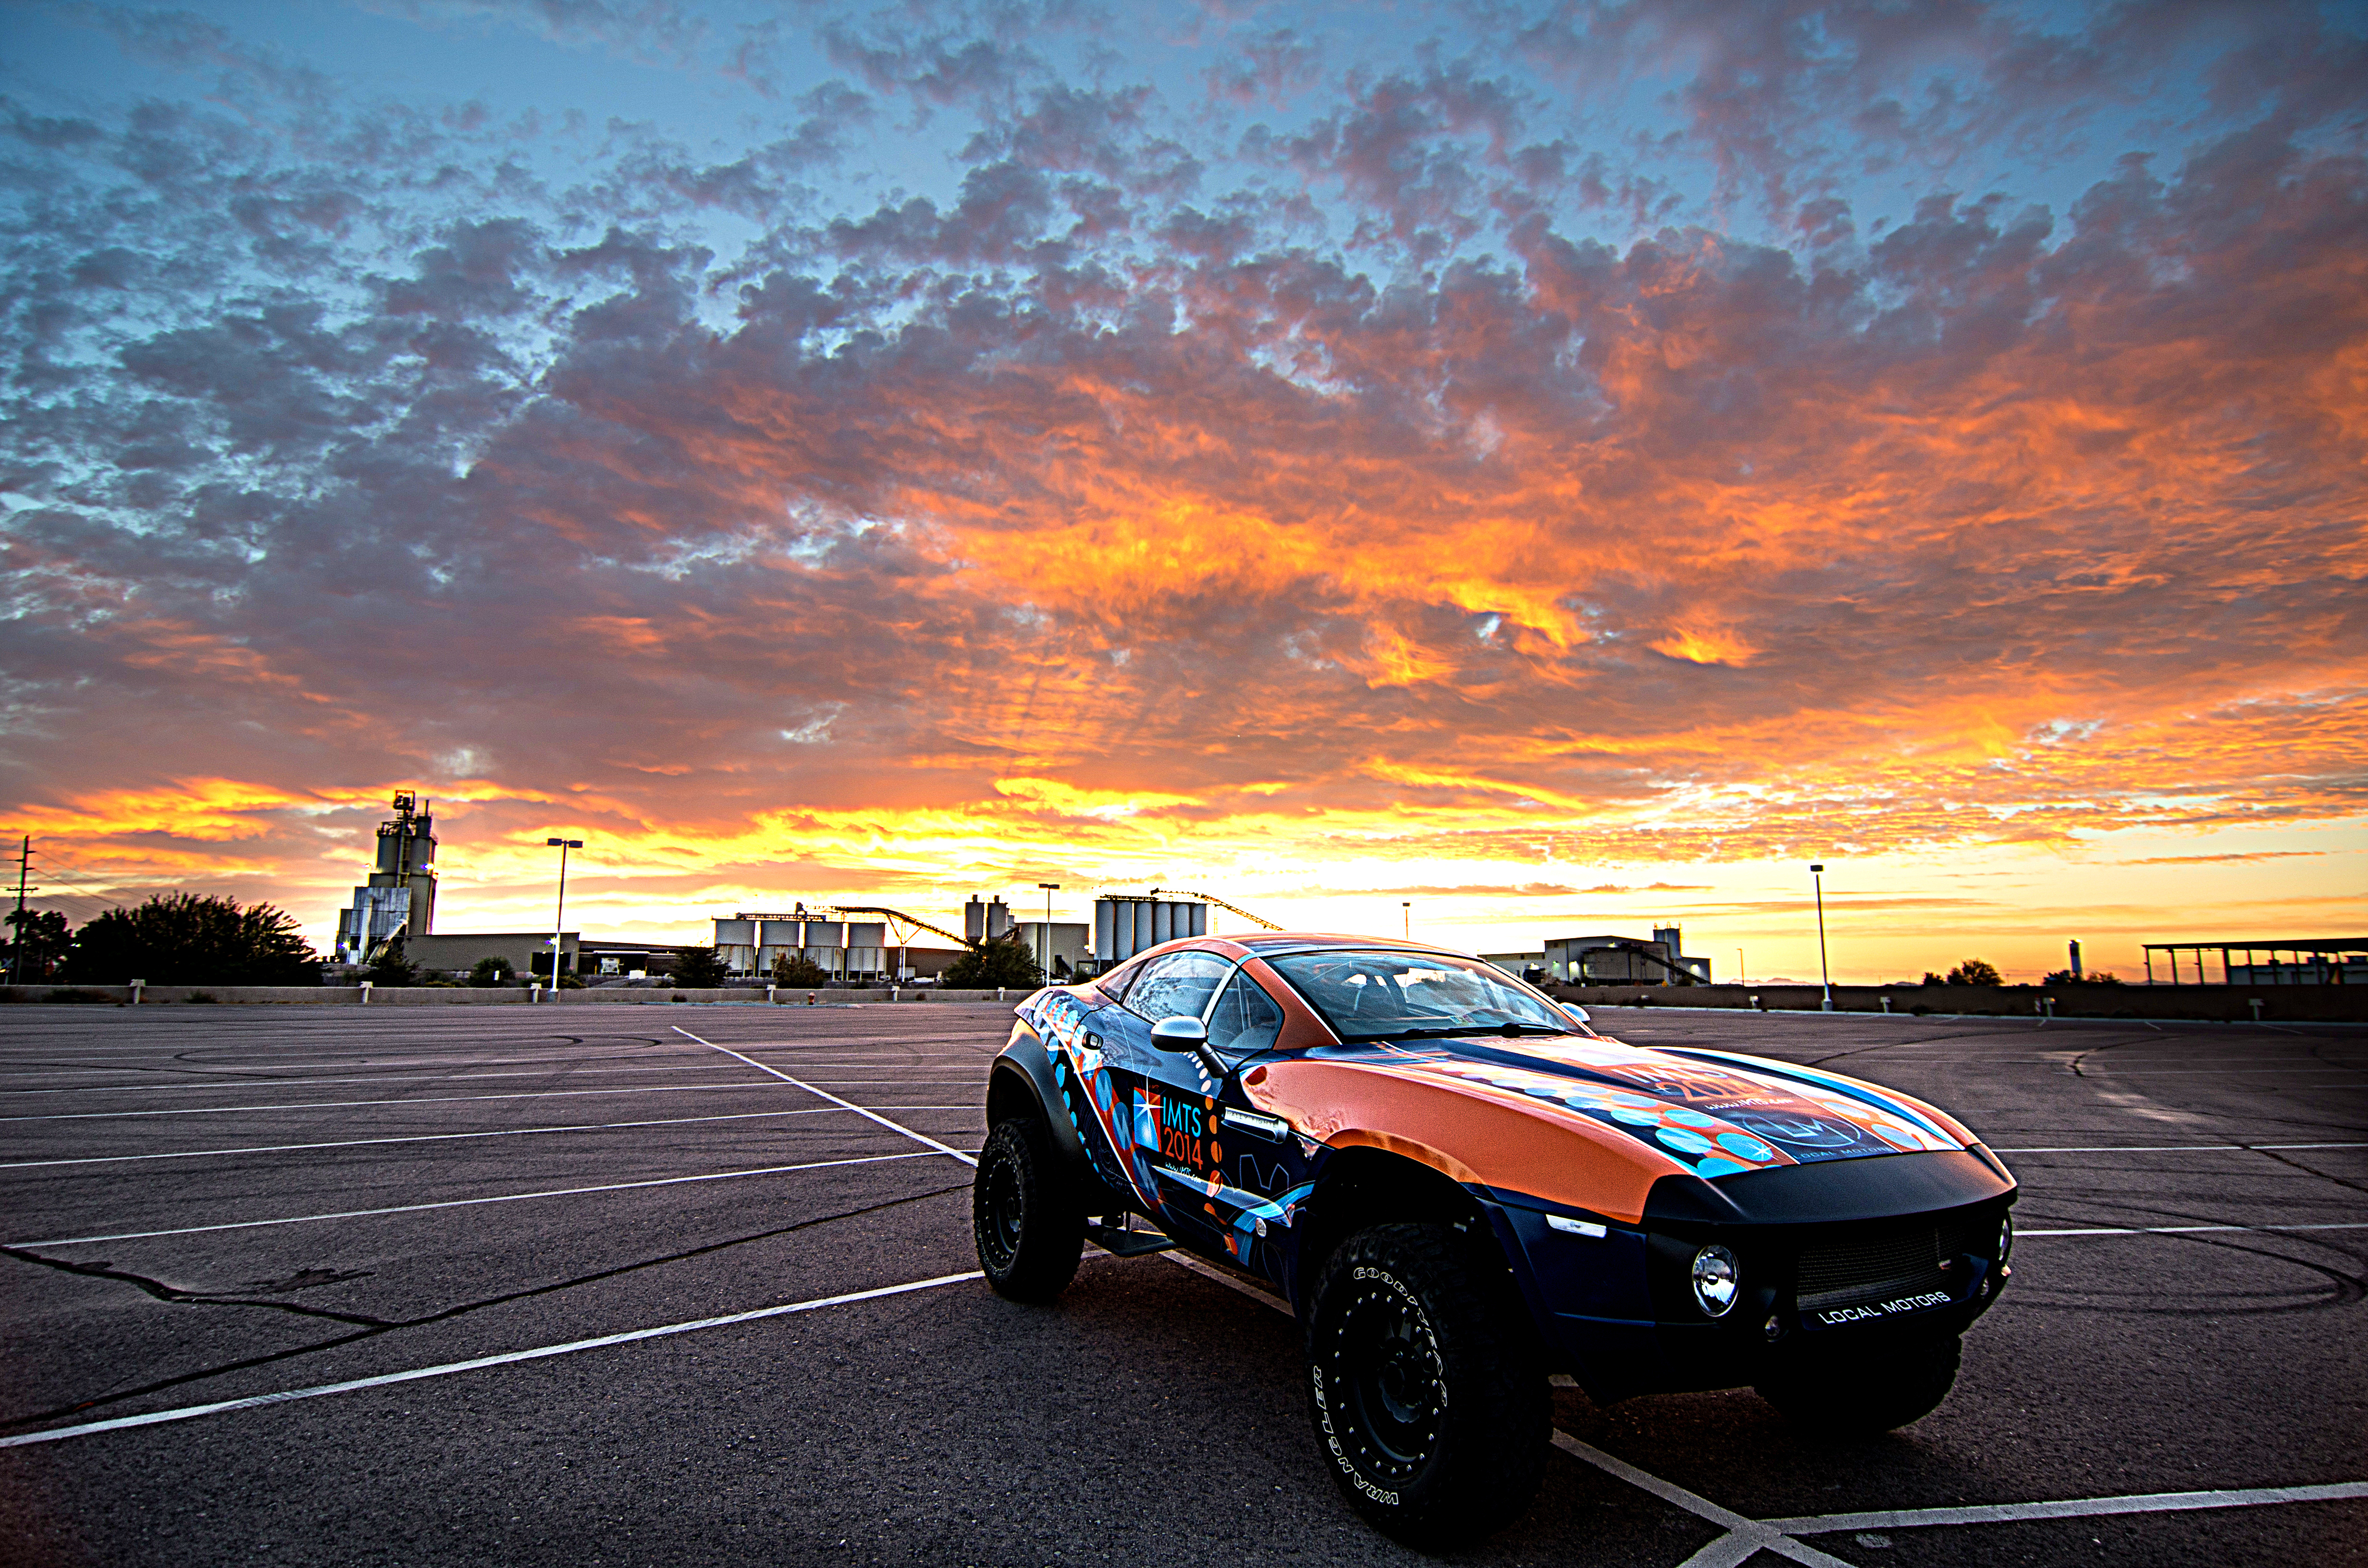 Local Motors Rally Fighter with custom IMTS 2014 wrap near the Local Motors Microfactory in Chandler, Arizona. (Photo: Business Wire)